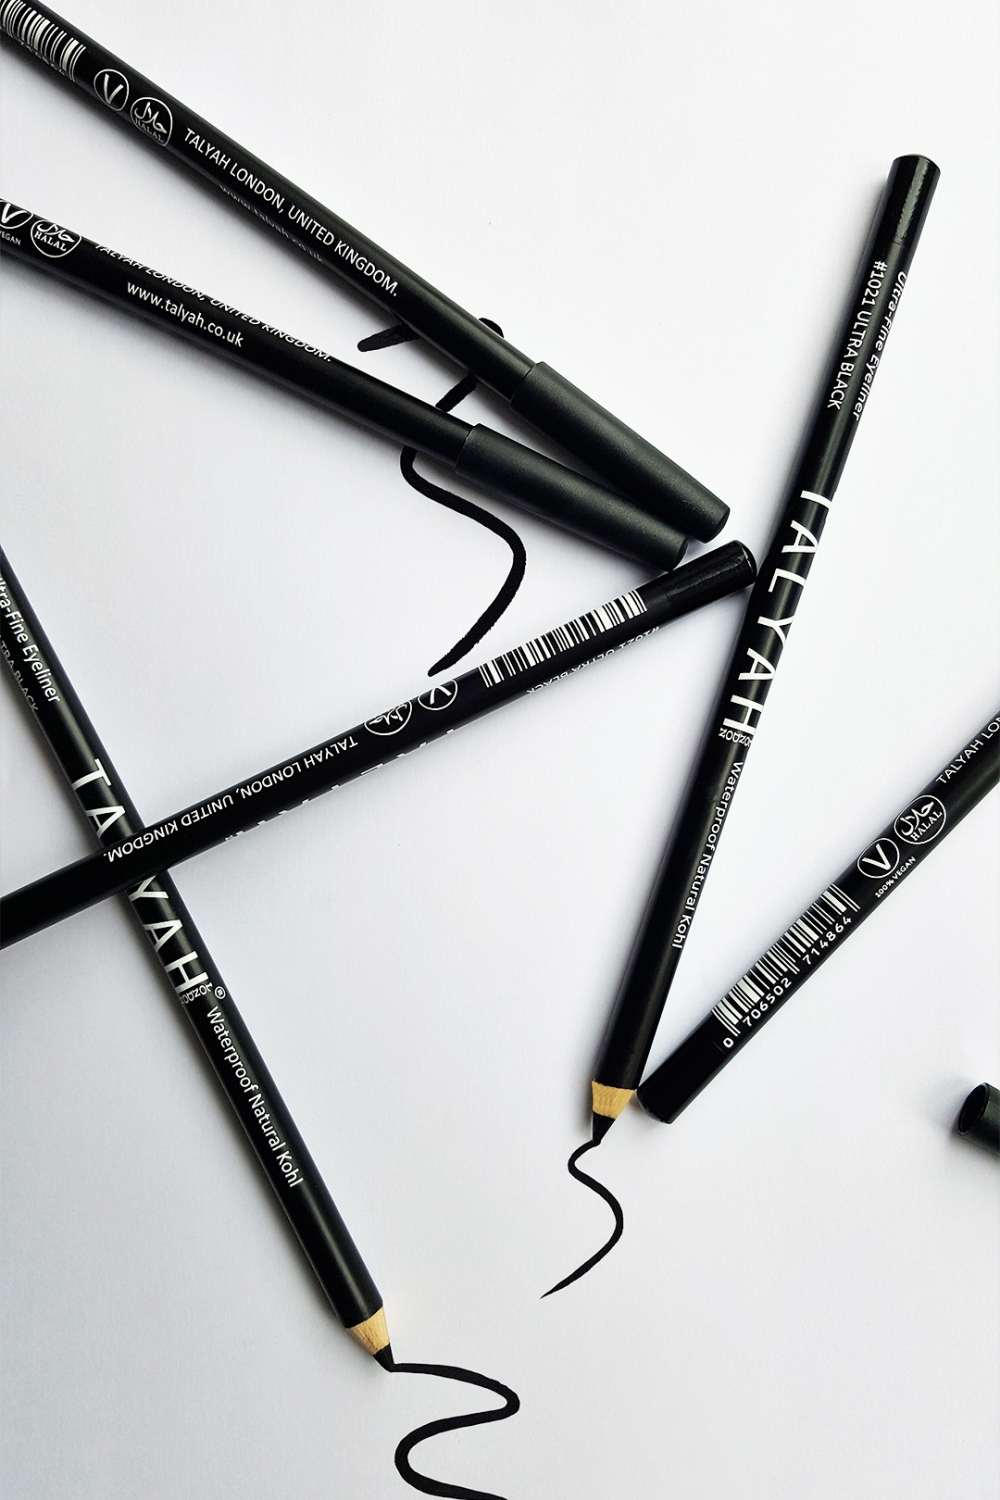 Kohl eyeliner waterproof boutique musulmane